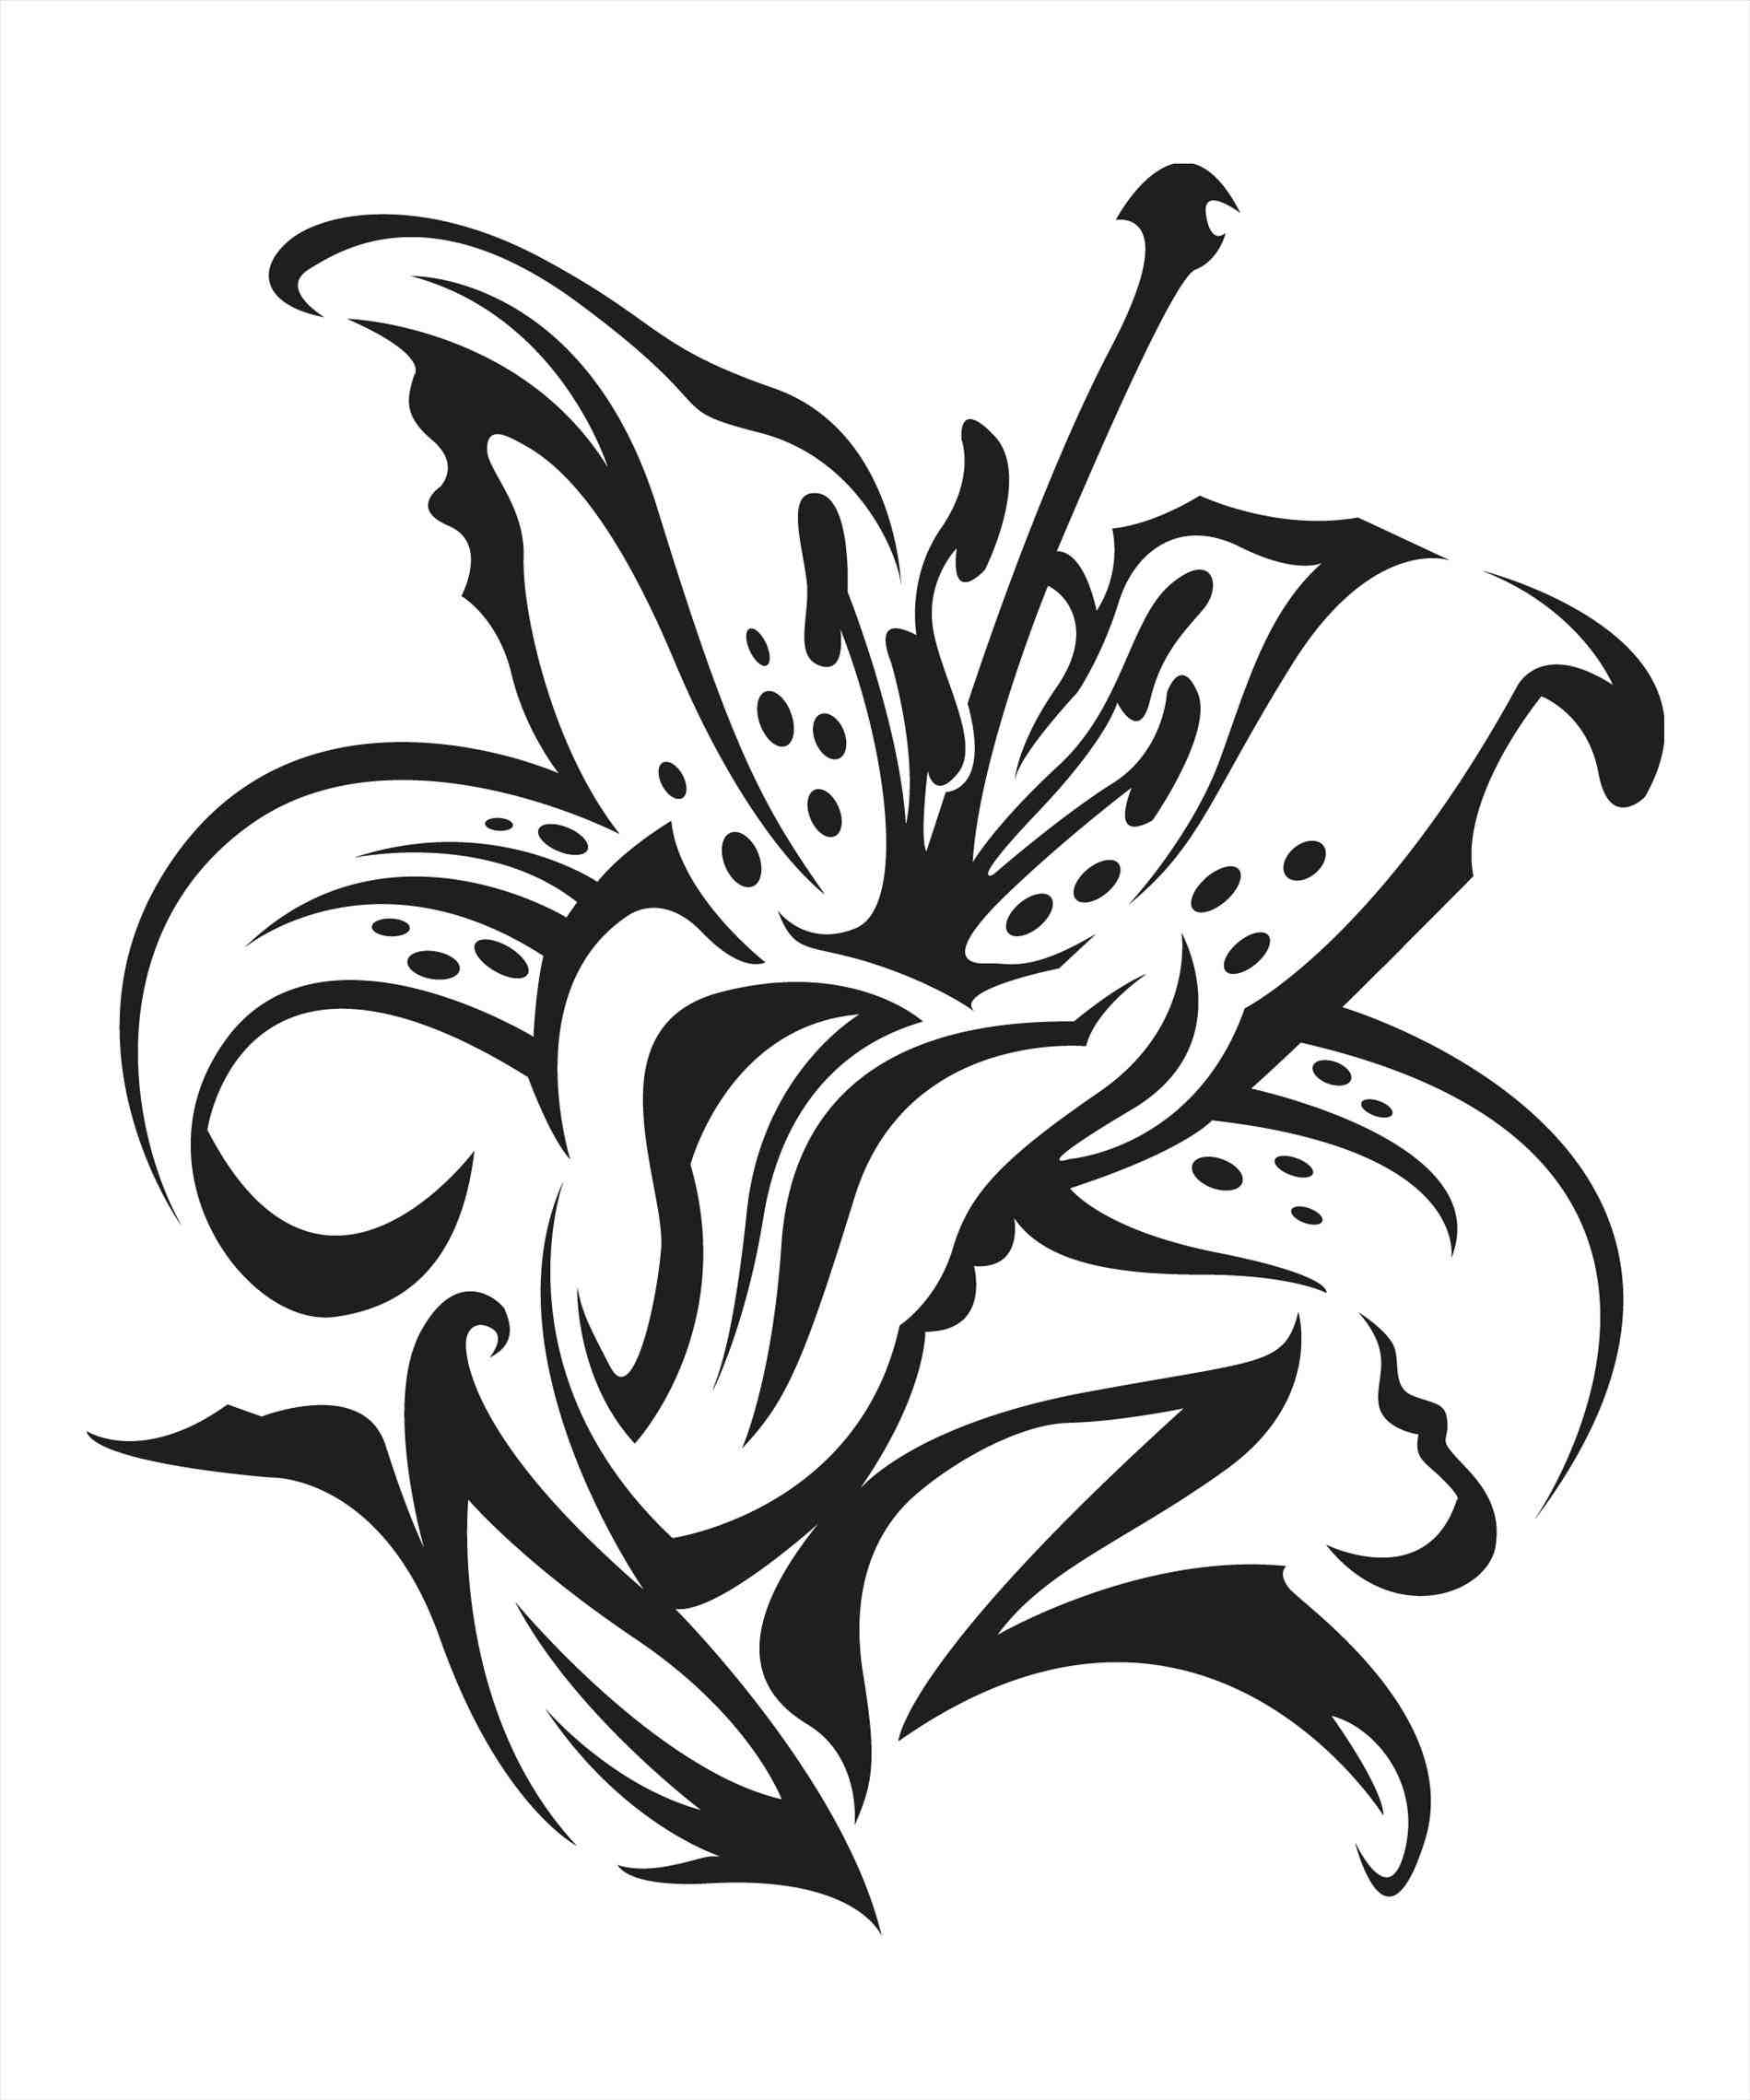 1899x2279 Lily Flower Drawing Outline Black Silhouette Vector Easter Clipart